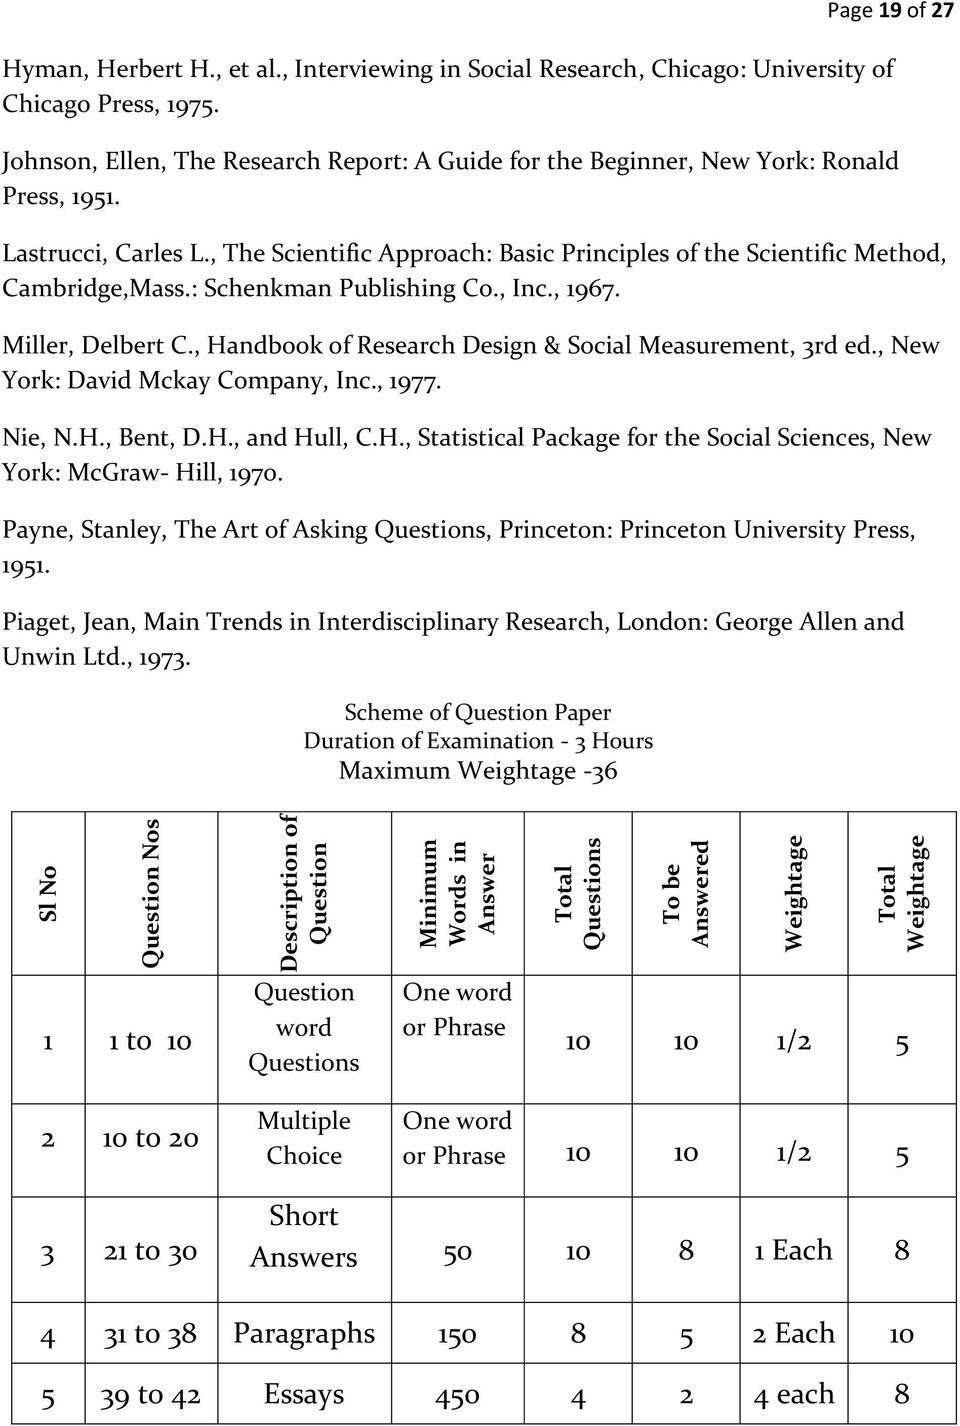 : Schenkman Publishing Co., Inc., 1967. Miller, Delbert C., Handbook of Research Design & Social Measurement, 3rd ed., New York: David Mckay Company, Inc., 1977. Nie, N.H., Bent, D.H., and Hull, C.H., Statistical Package for the Social Sciences, New York: McGraw- Hill, 1970.